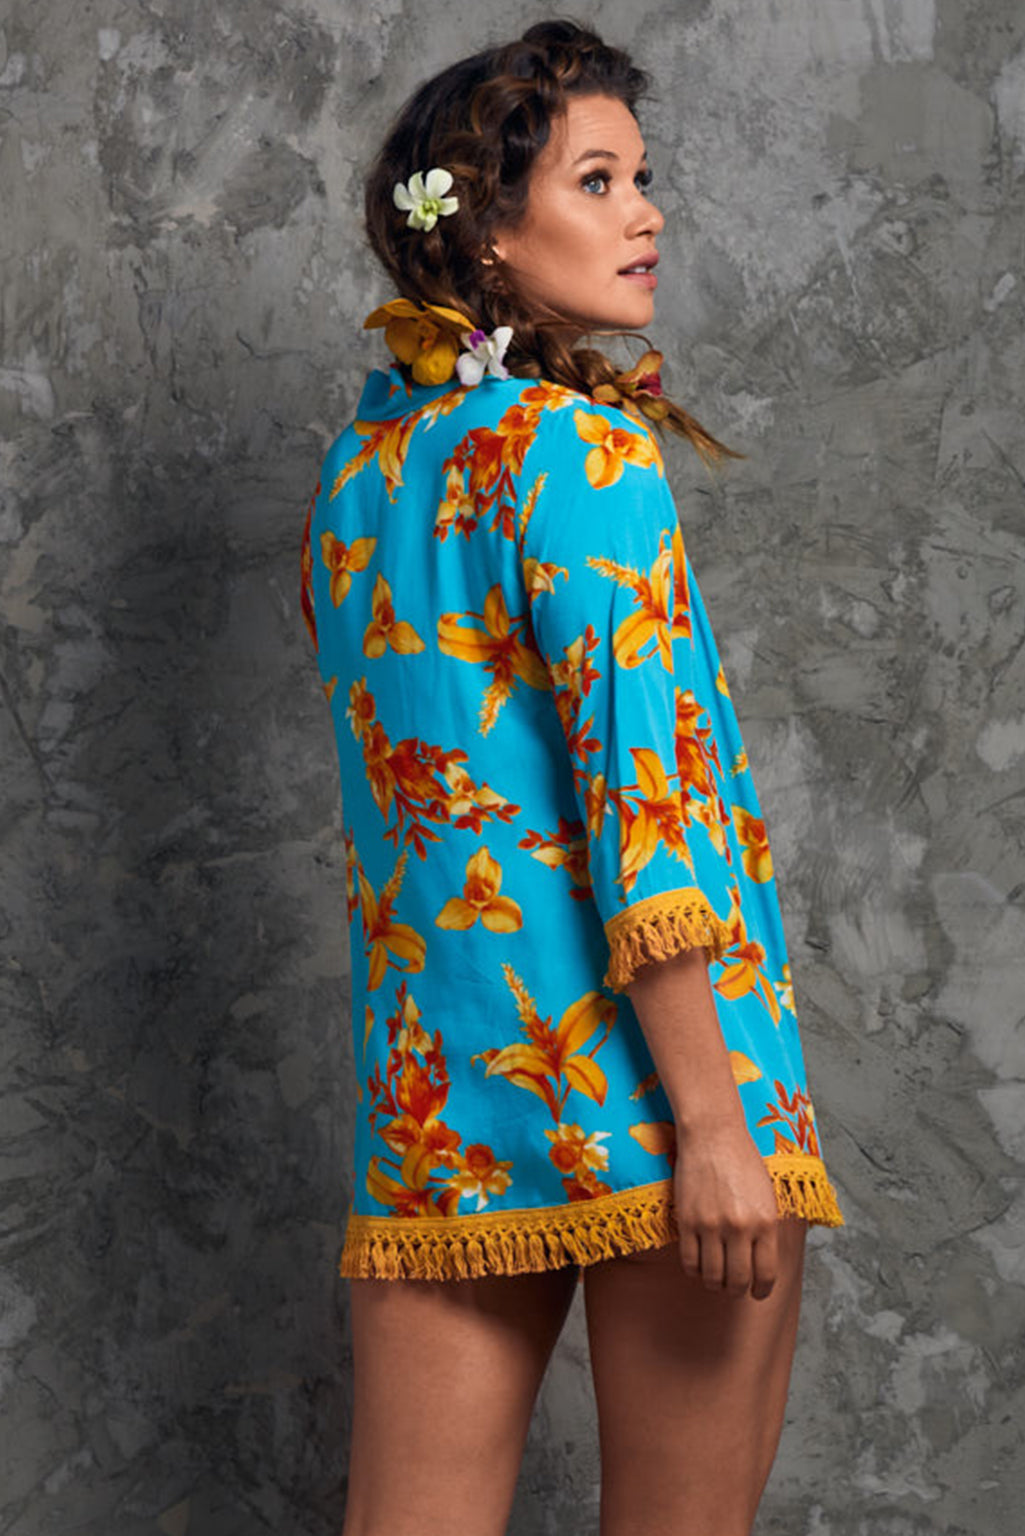 Short Summer Flowers Kimono Palmazul Beachwear Back blue and orange beach cover up with tassels